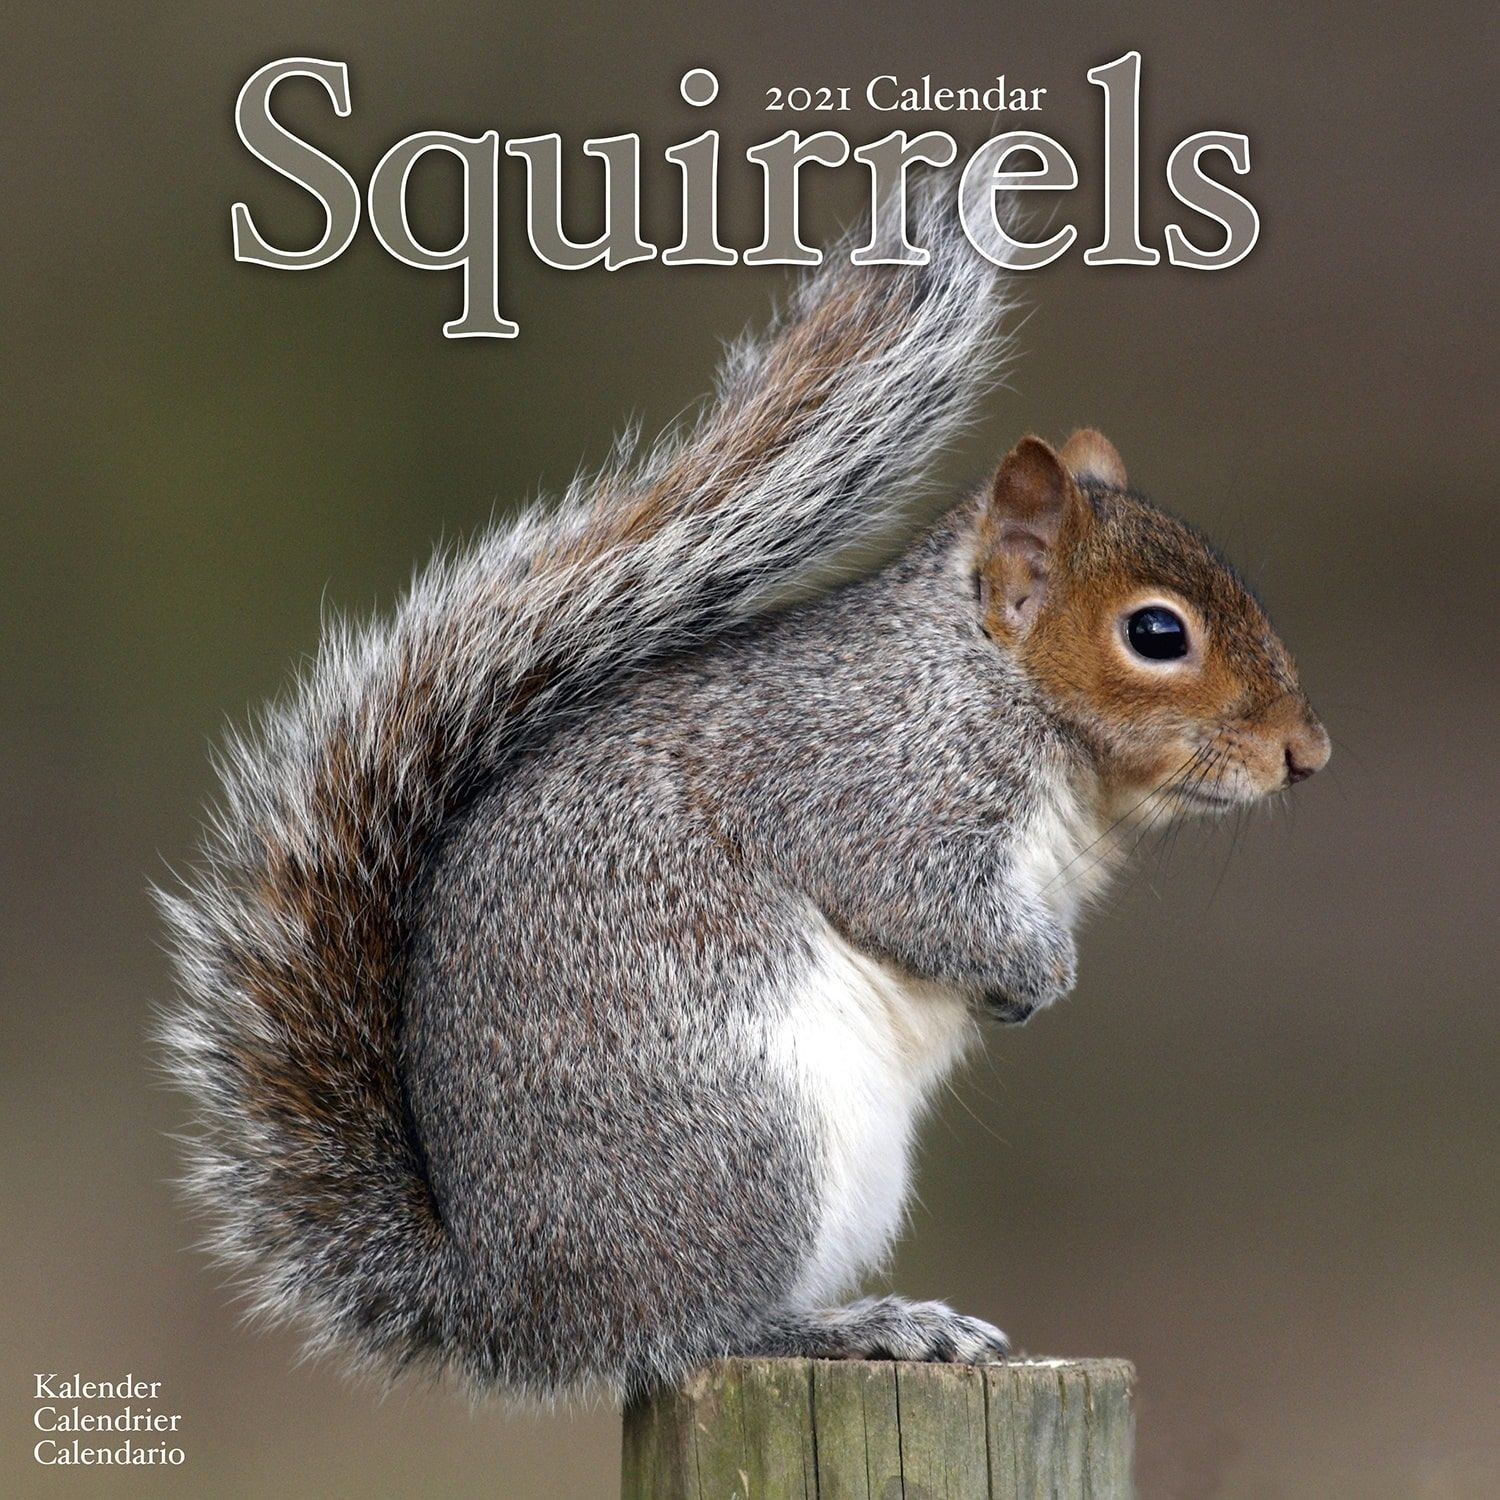 Squirrels Wall Calendar 2021 by Avonside